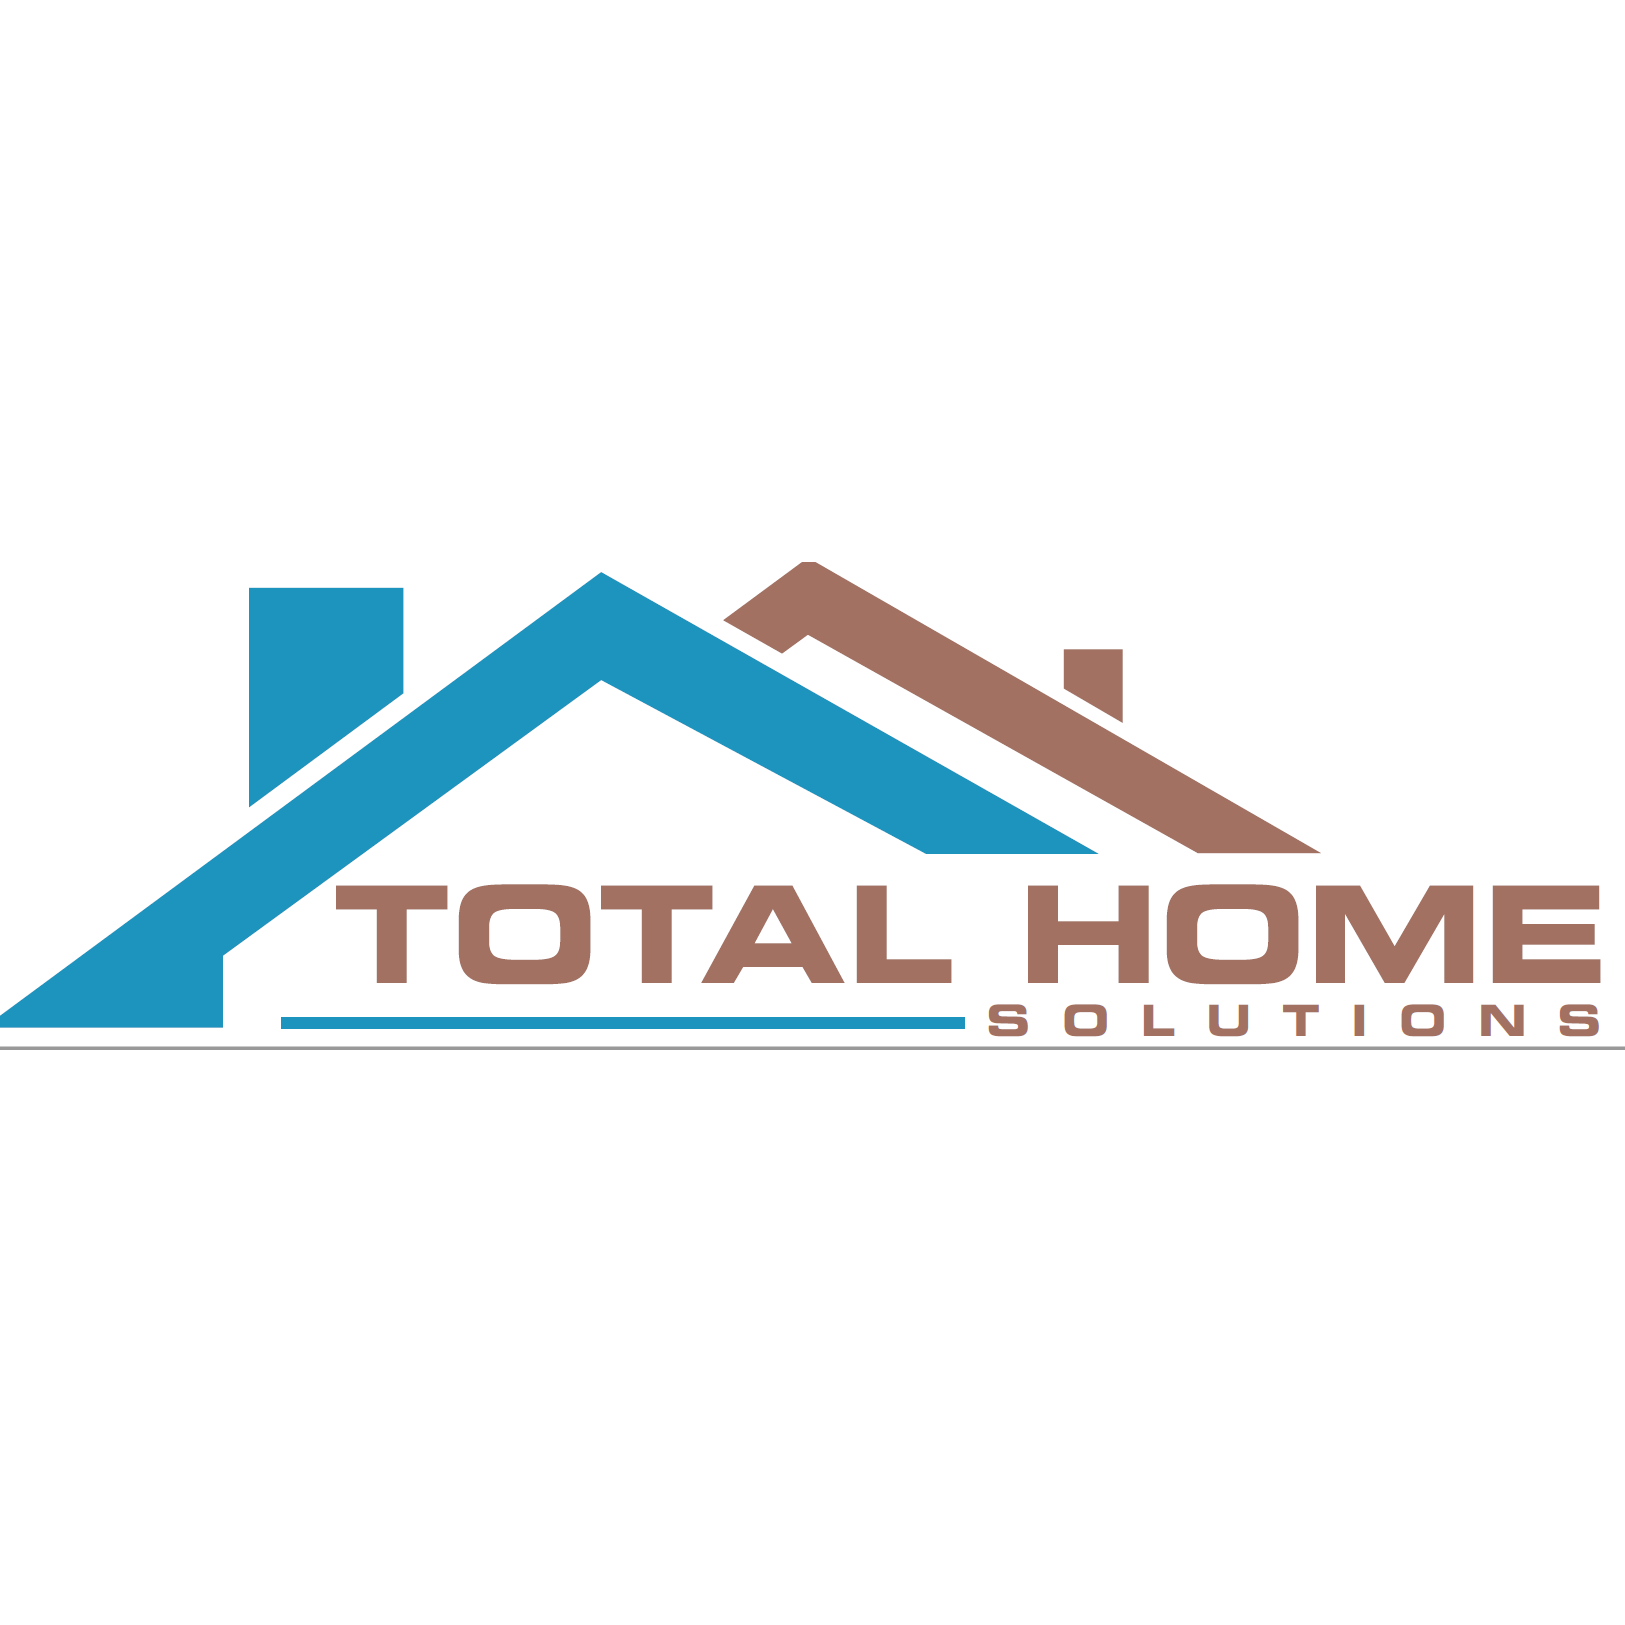 Total Home Solutions LLC